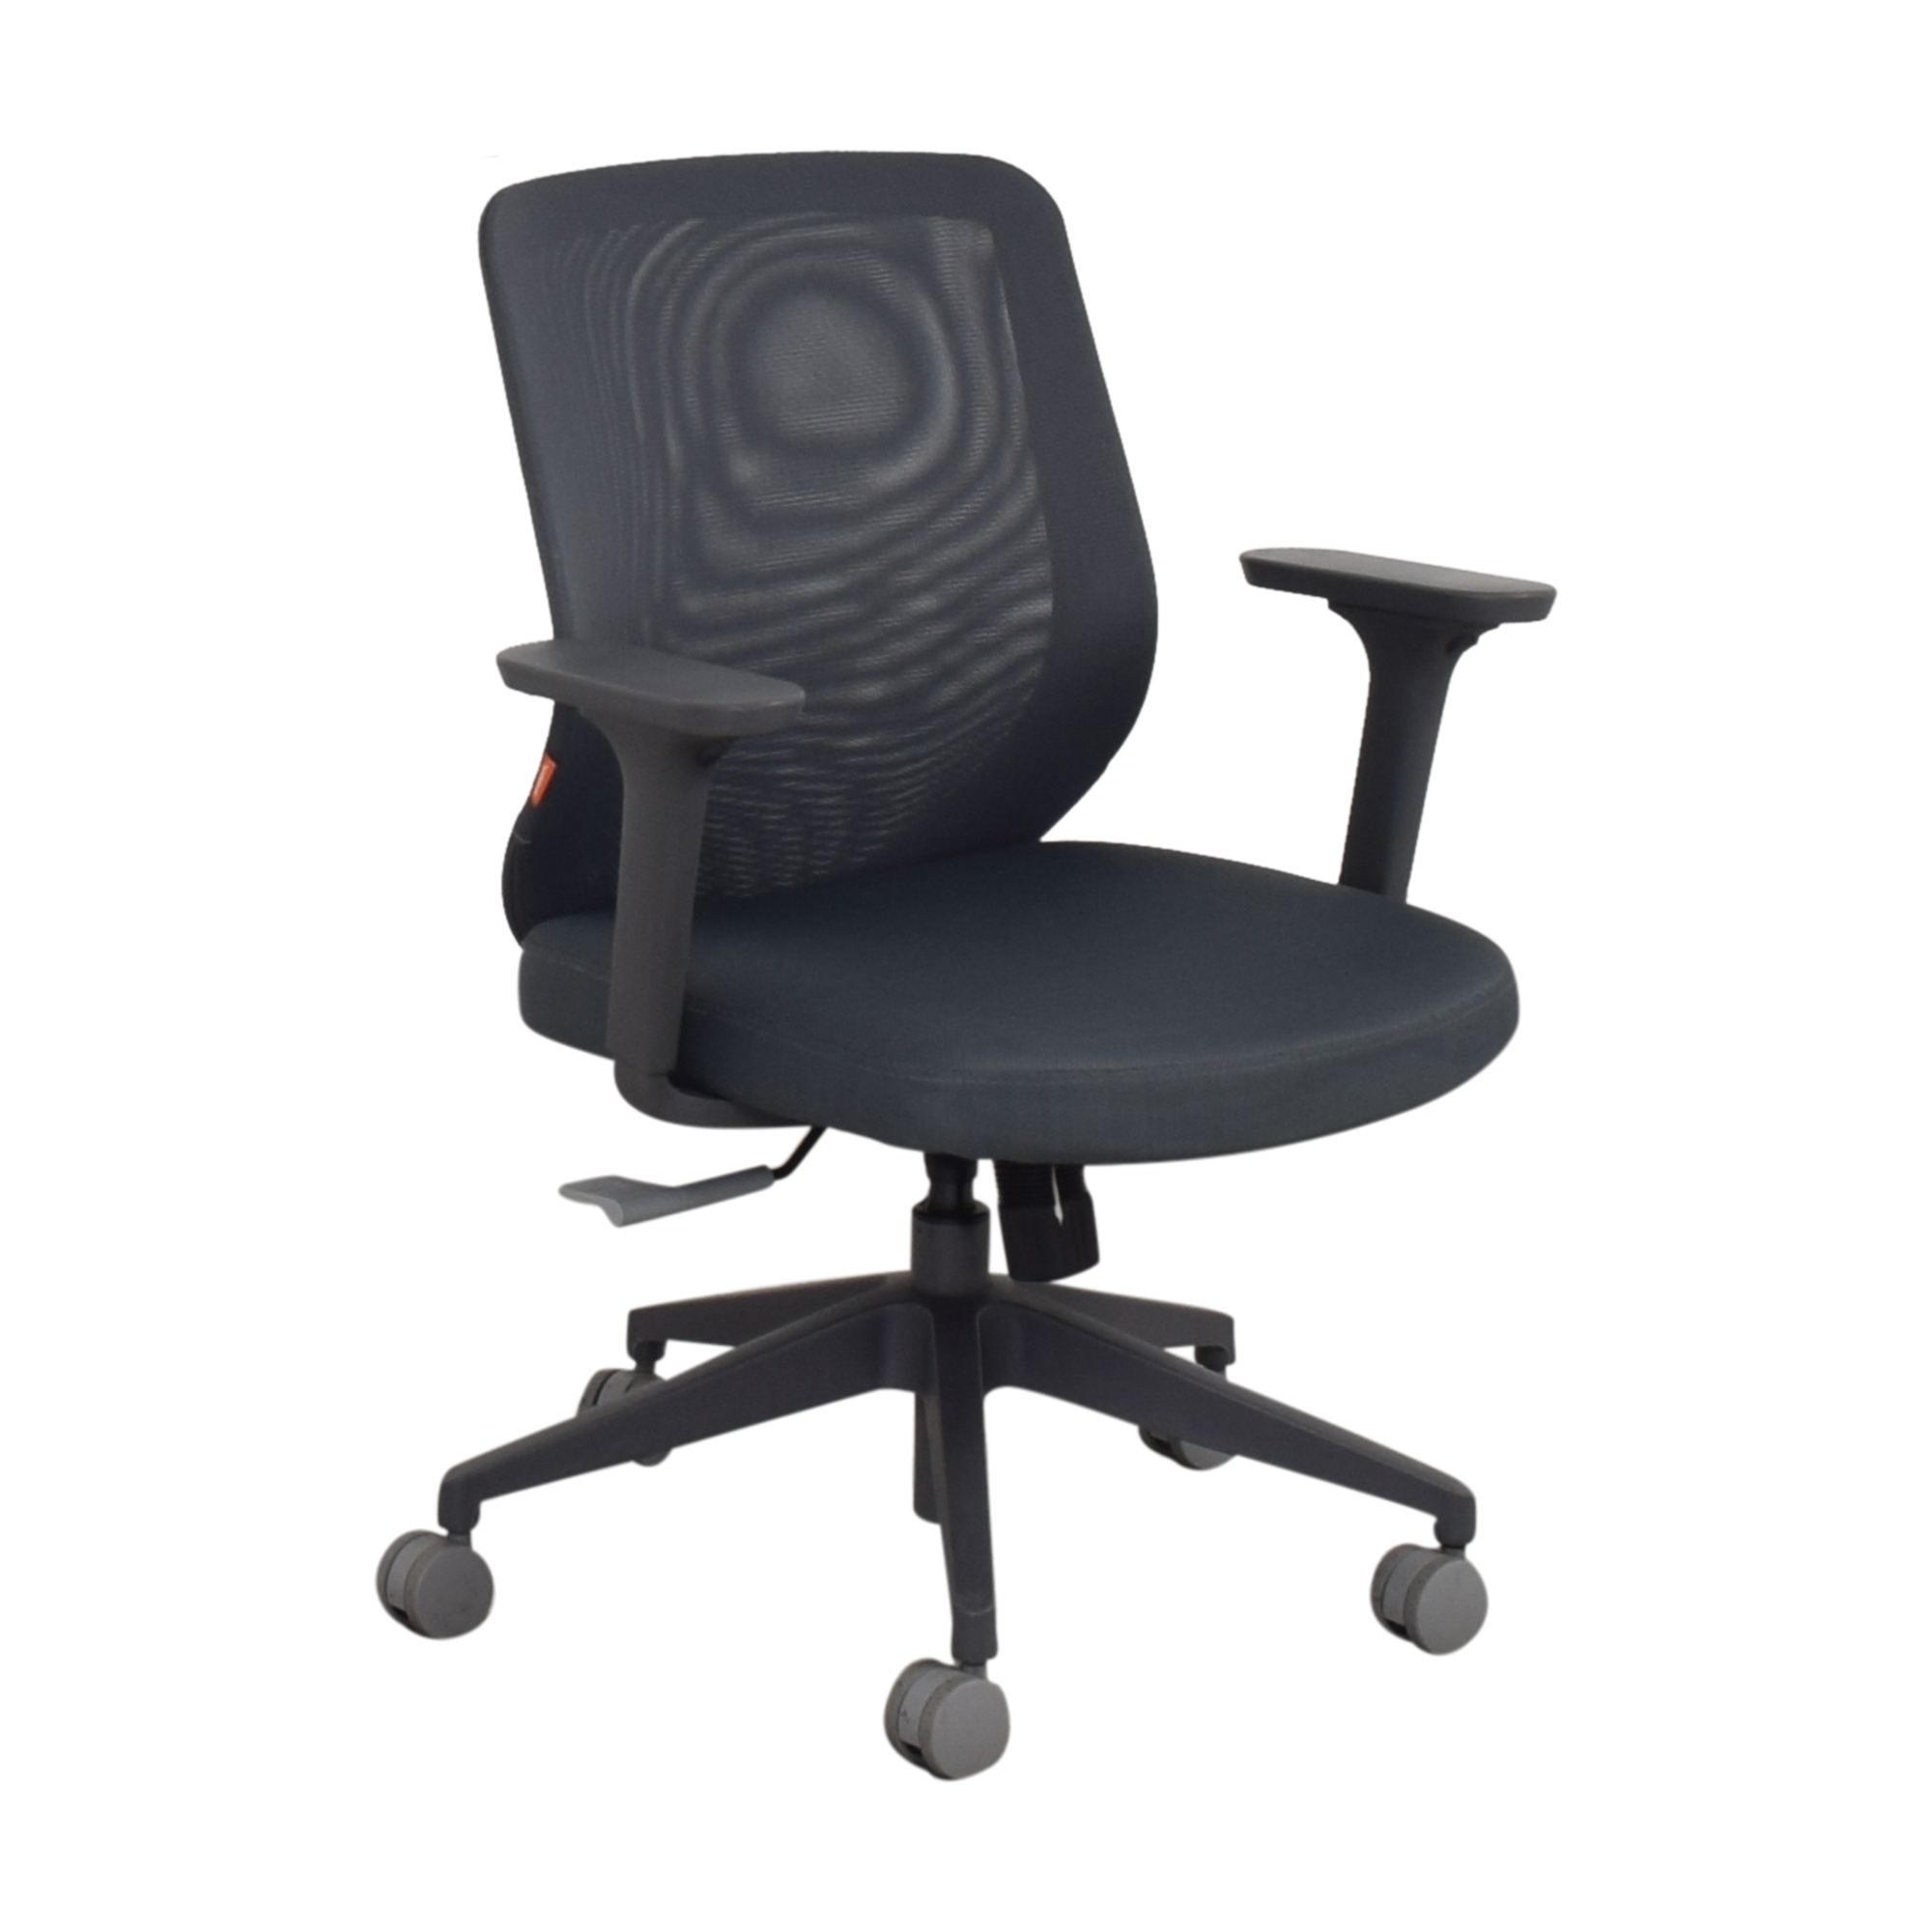 Poppin Poppin Max Task Chair ma